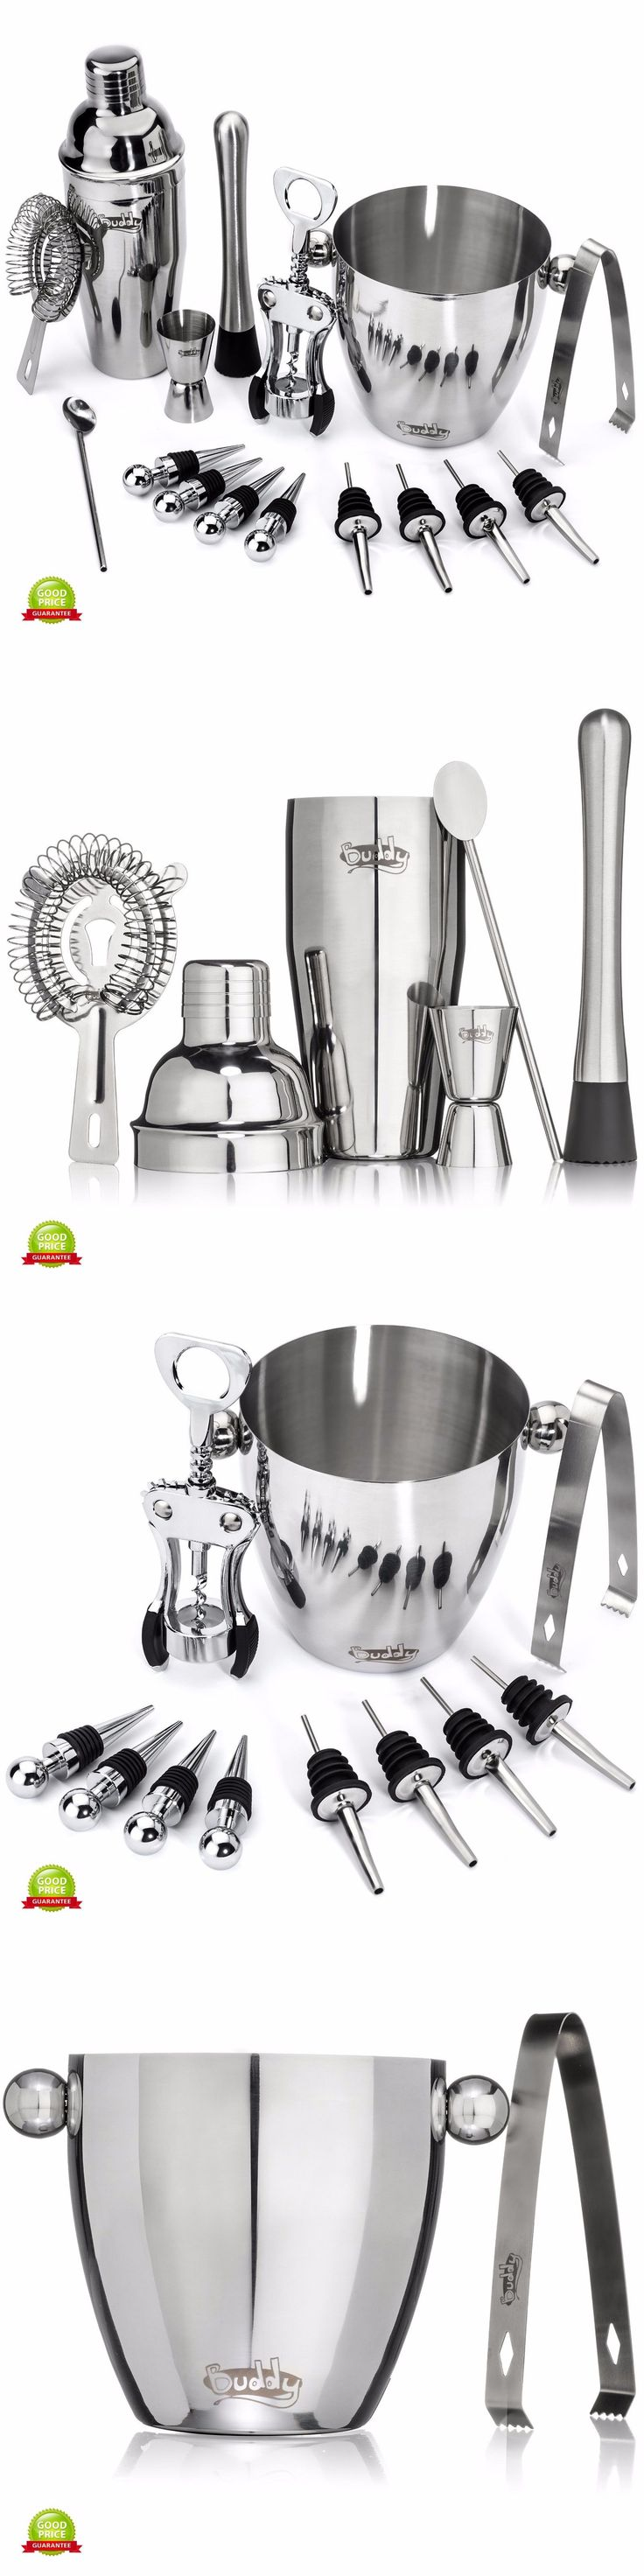 Cocktail Shakers and Bar Sets 63504: Bartender Set Stainless Steel Barware Tools Cocktail Shaker Kit Ice Bucket Bar -> BUY IT NOW ONLY: $63.97 on eBay!